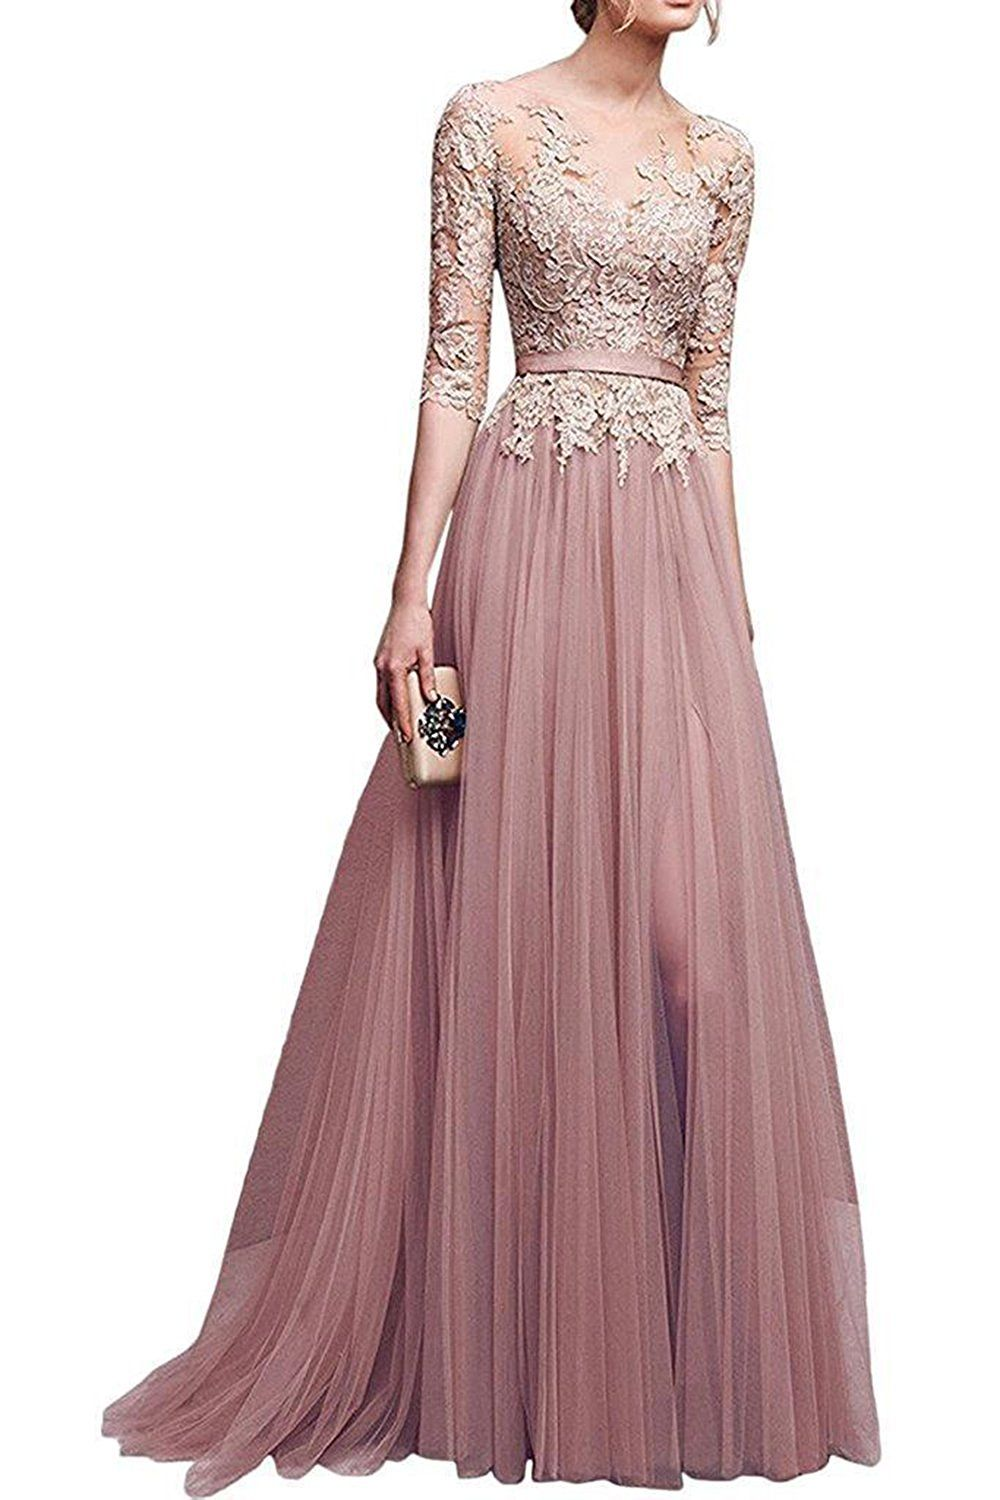 Amazon.com: MisShow Applique Tulle 3/4 Sleeves Long Prom Dresses ...